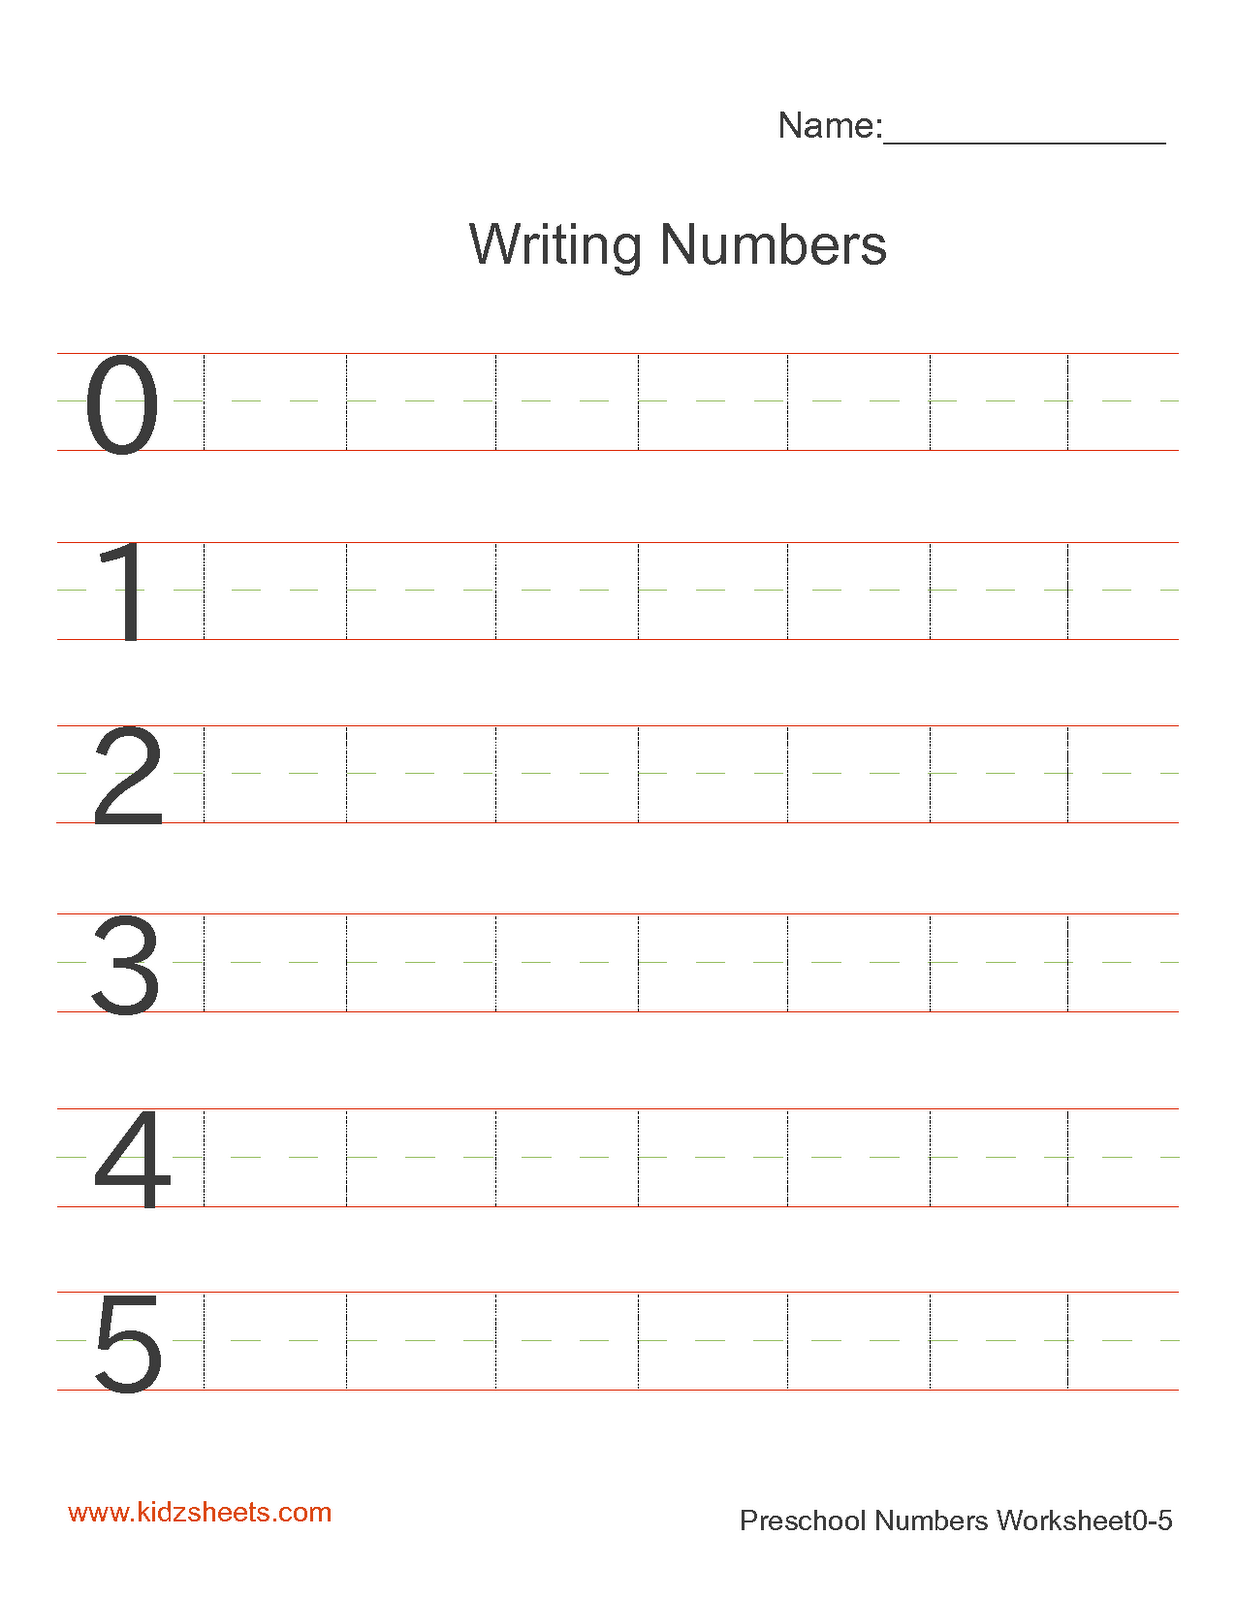 Preschool Writing Numbers Worksheet1